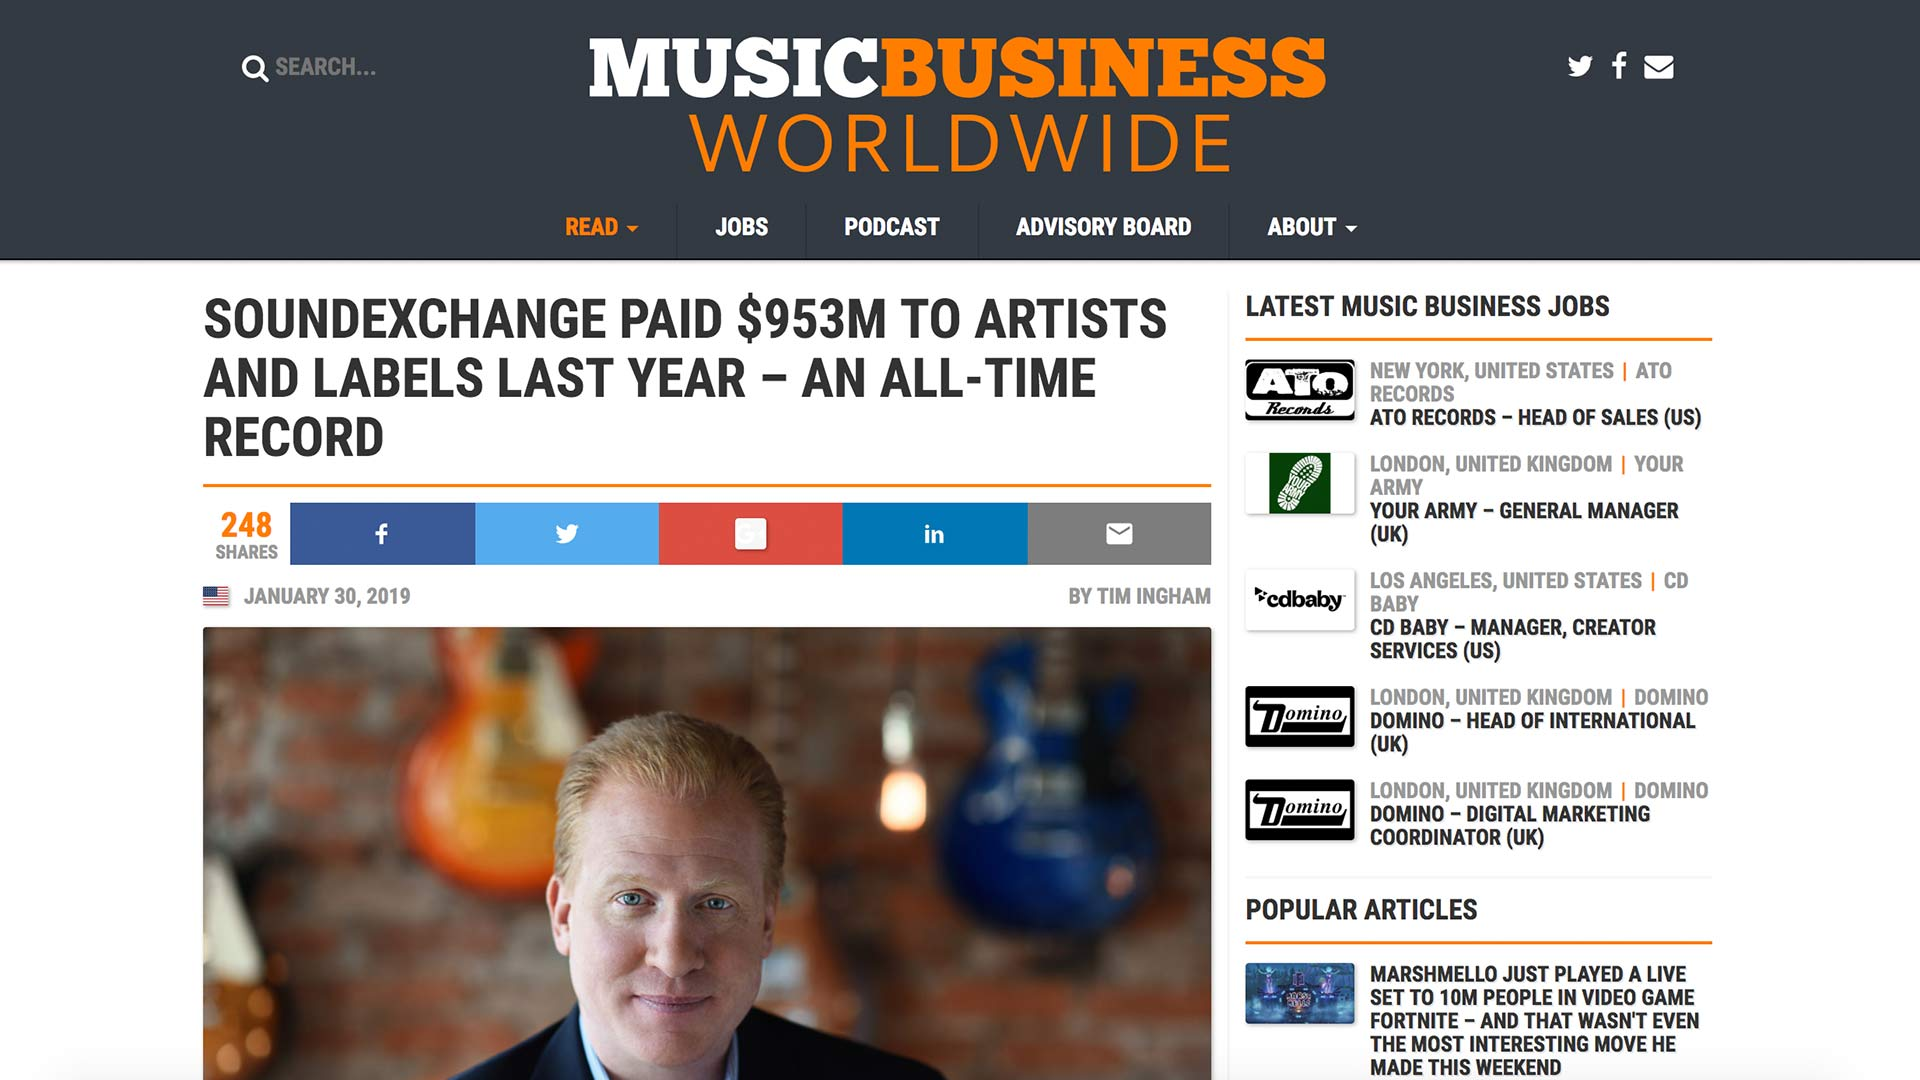 Fairness Rocks News SOUNDEXCHANGE PAID $953M TO ARTISTS AND LABELS LAST YEAR – AN ALL-TIME RECORD